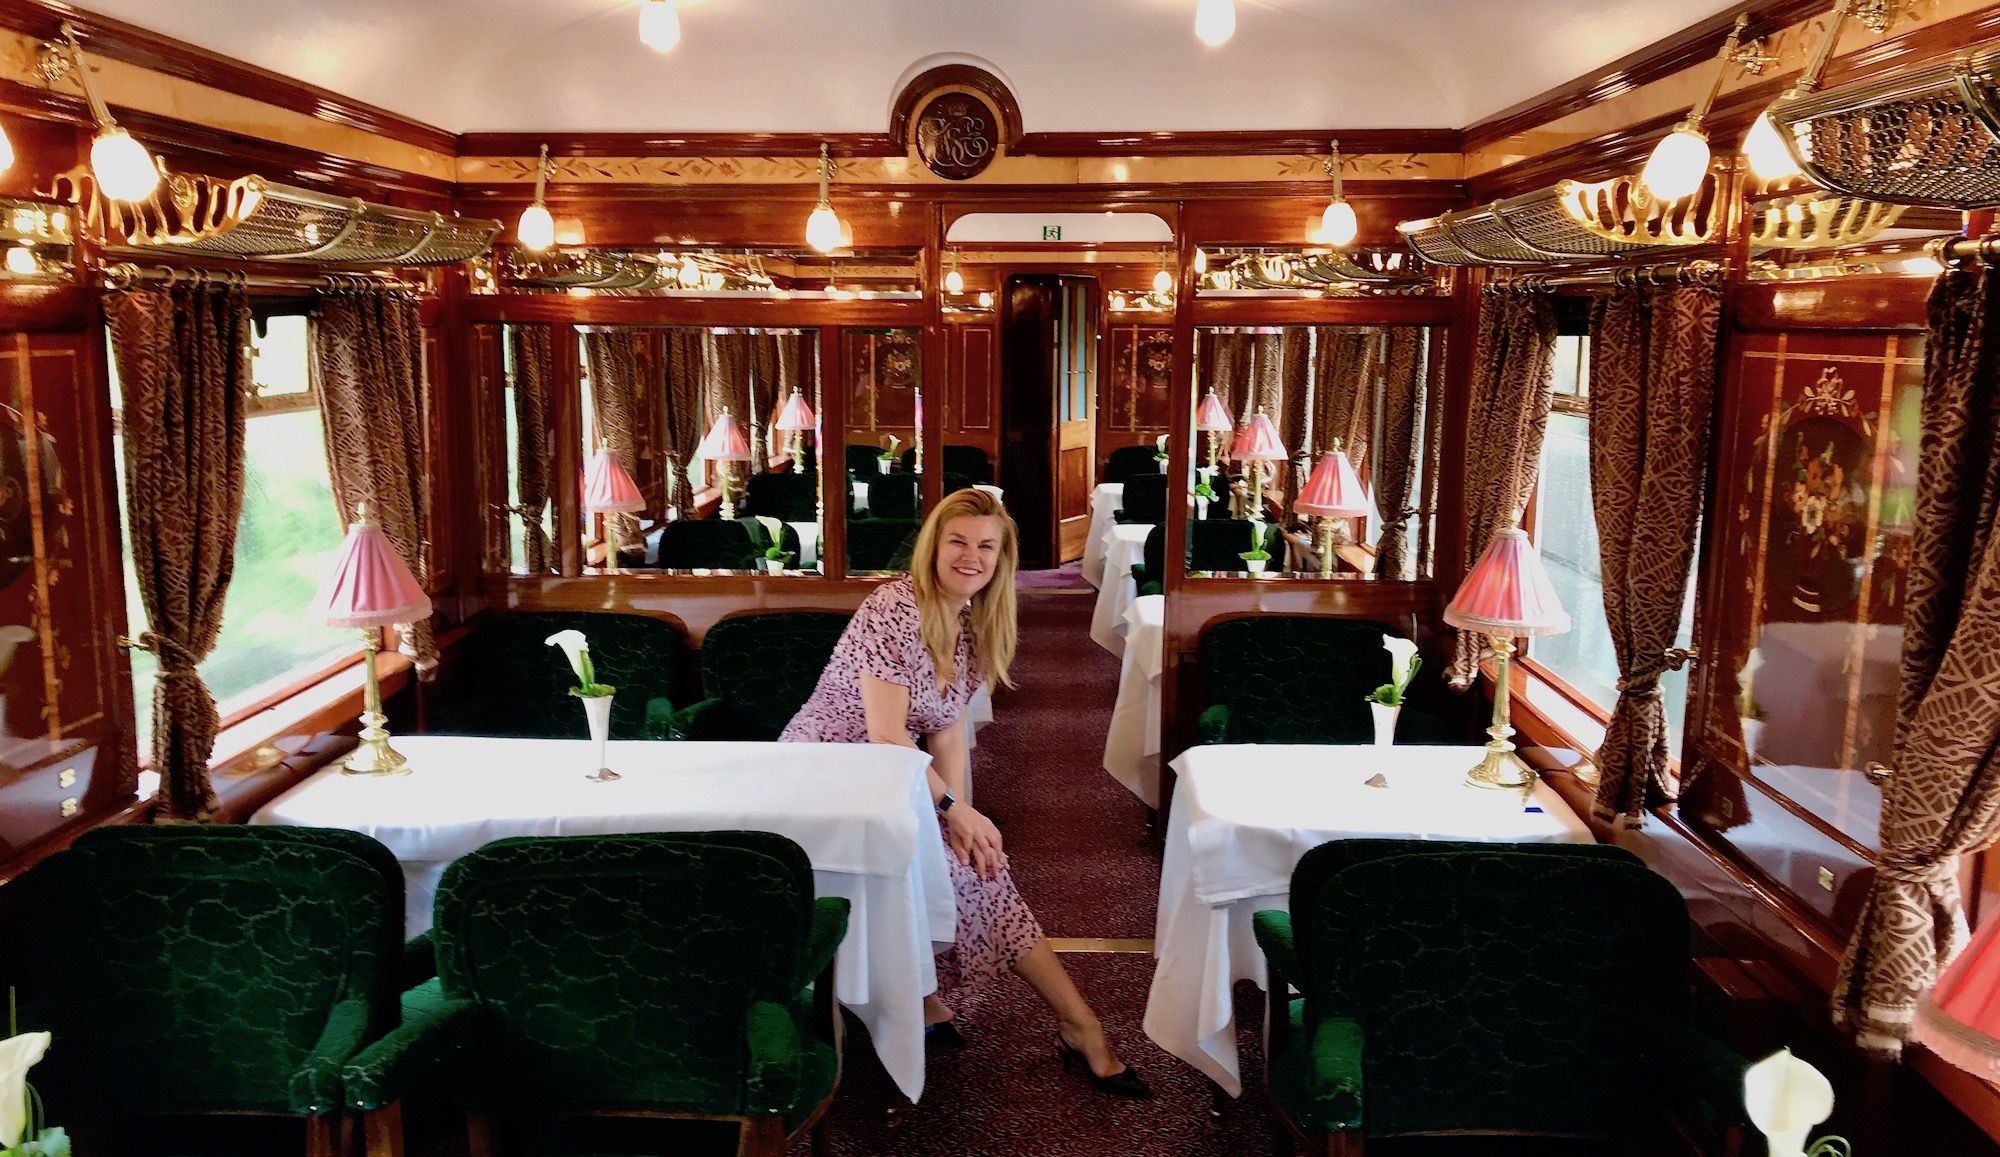 Sitting in the Etoile Du Nord Dining Car